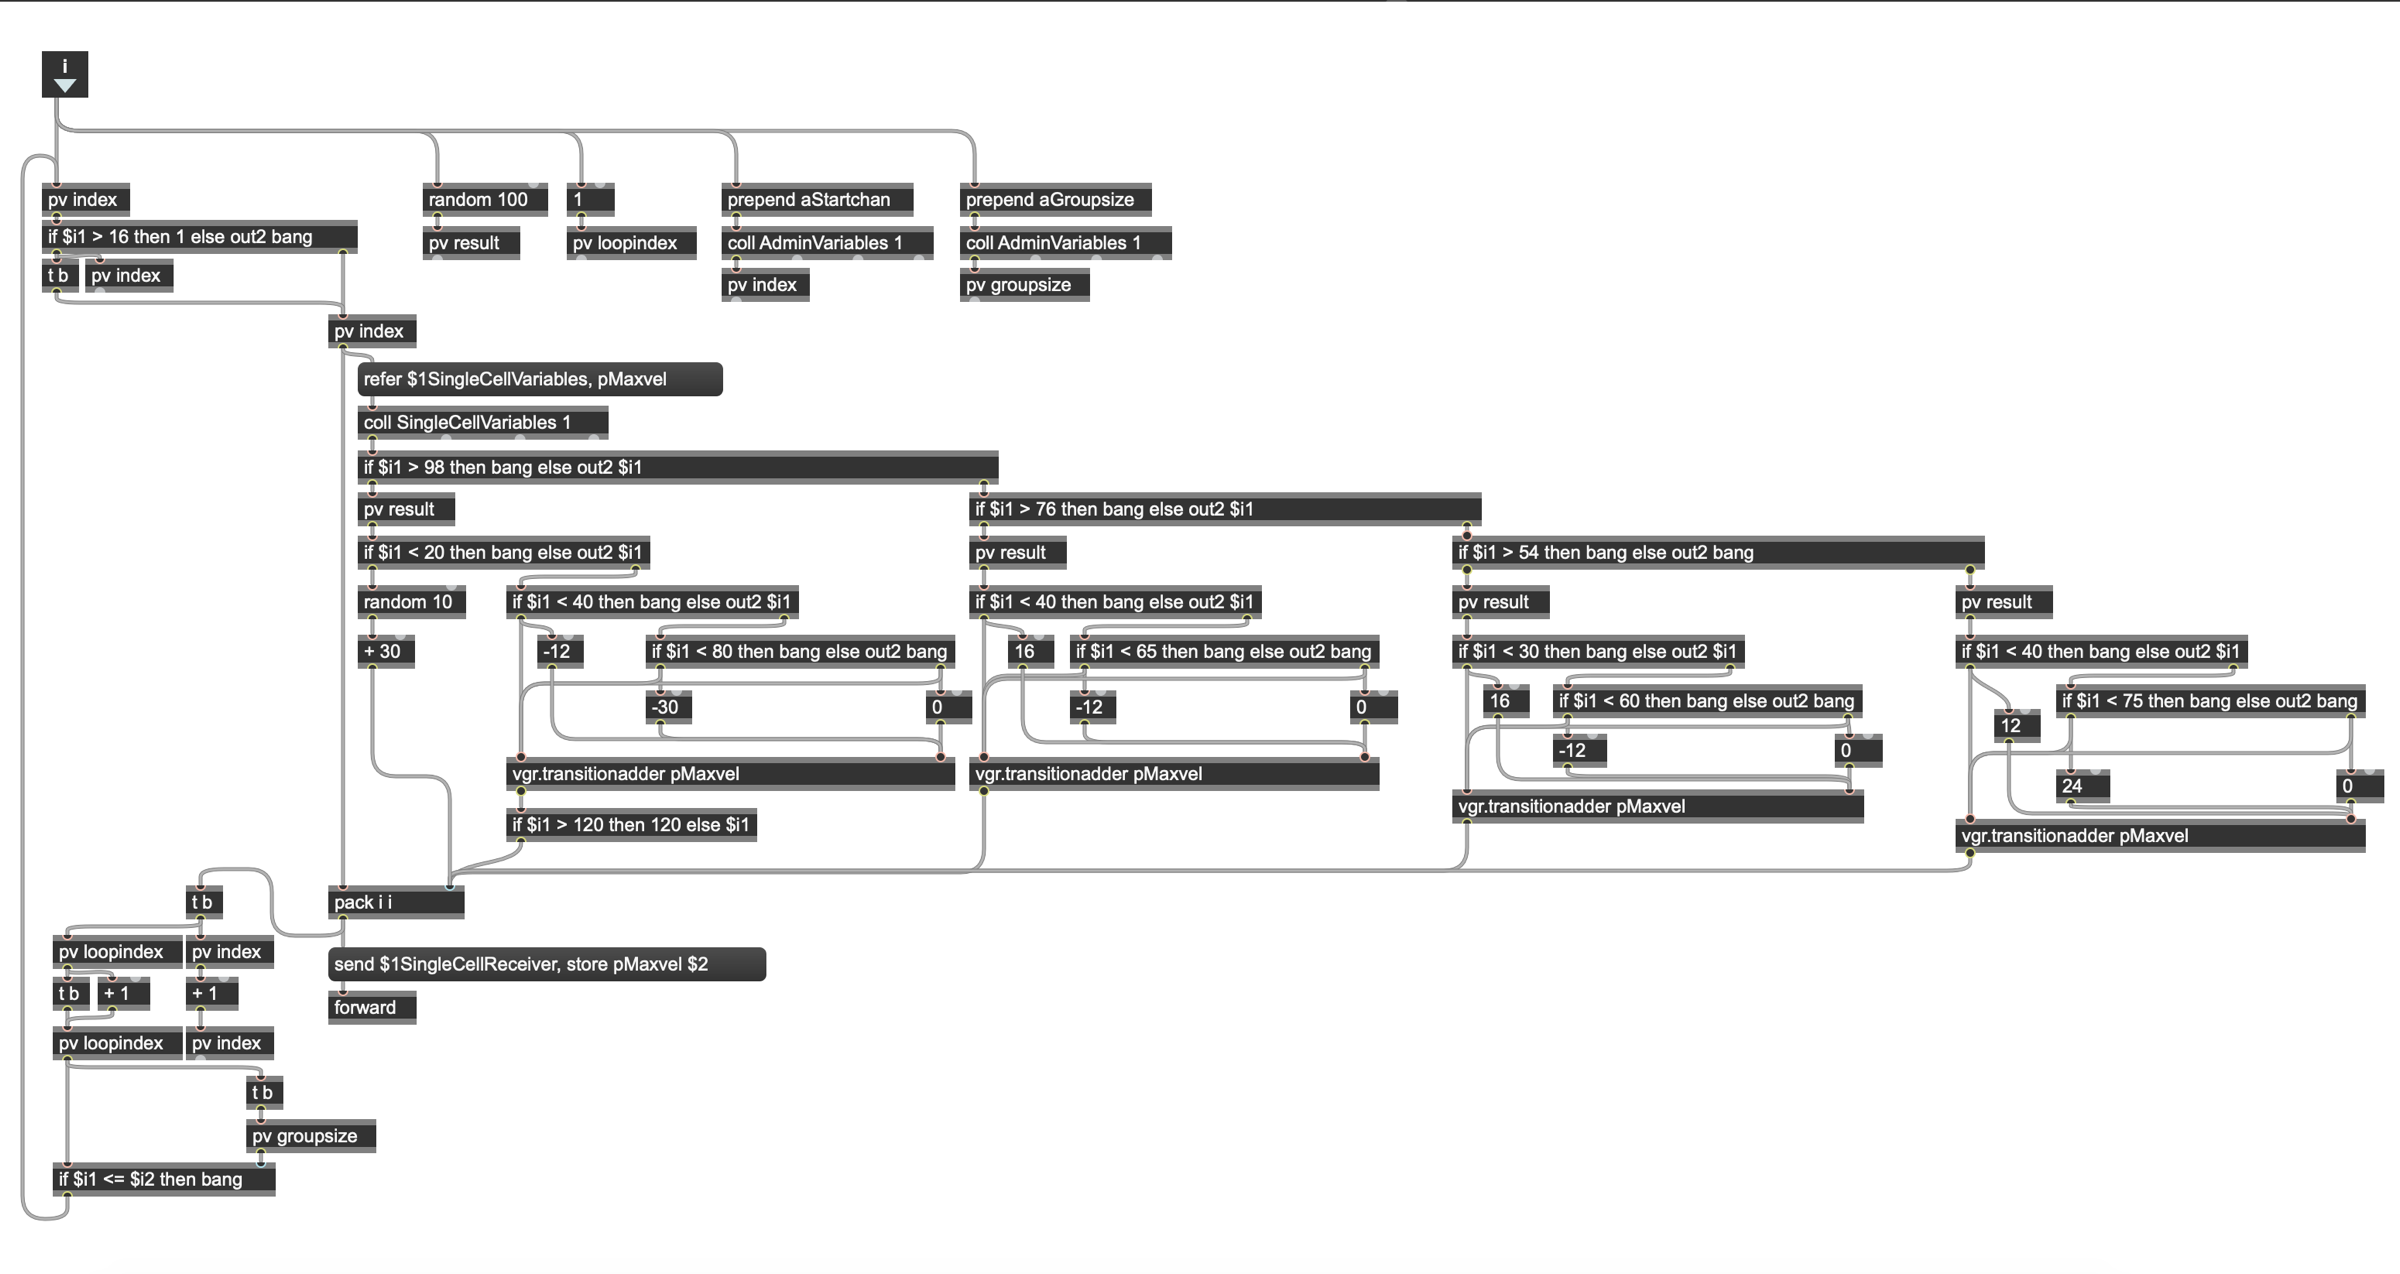 veltransition (implemented in Max/MSP by Damon Holzborn)